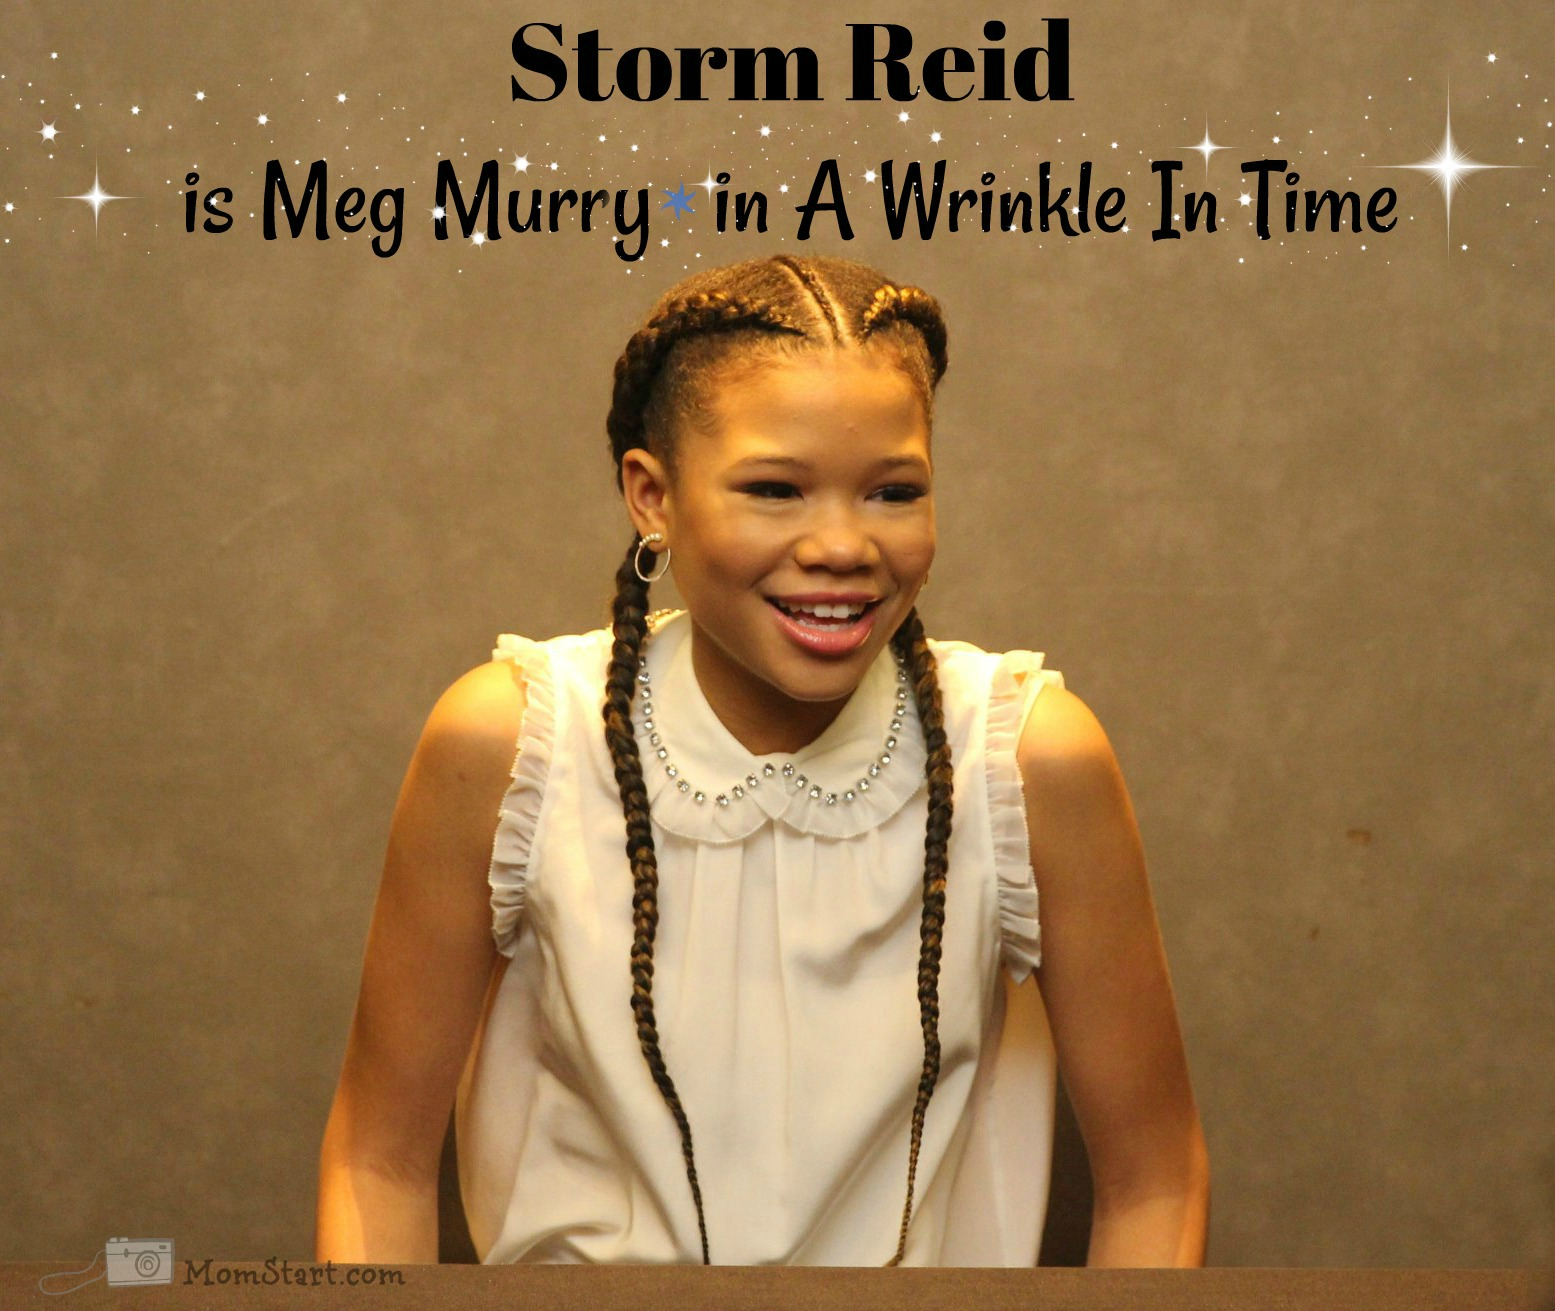 Meg Murry Quotes From A Wrinkle In Time: Storm Reid Is Meg Murry In A Wrinkle In Time